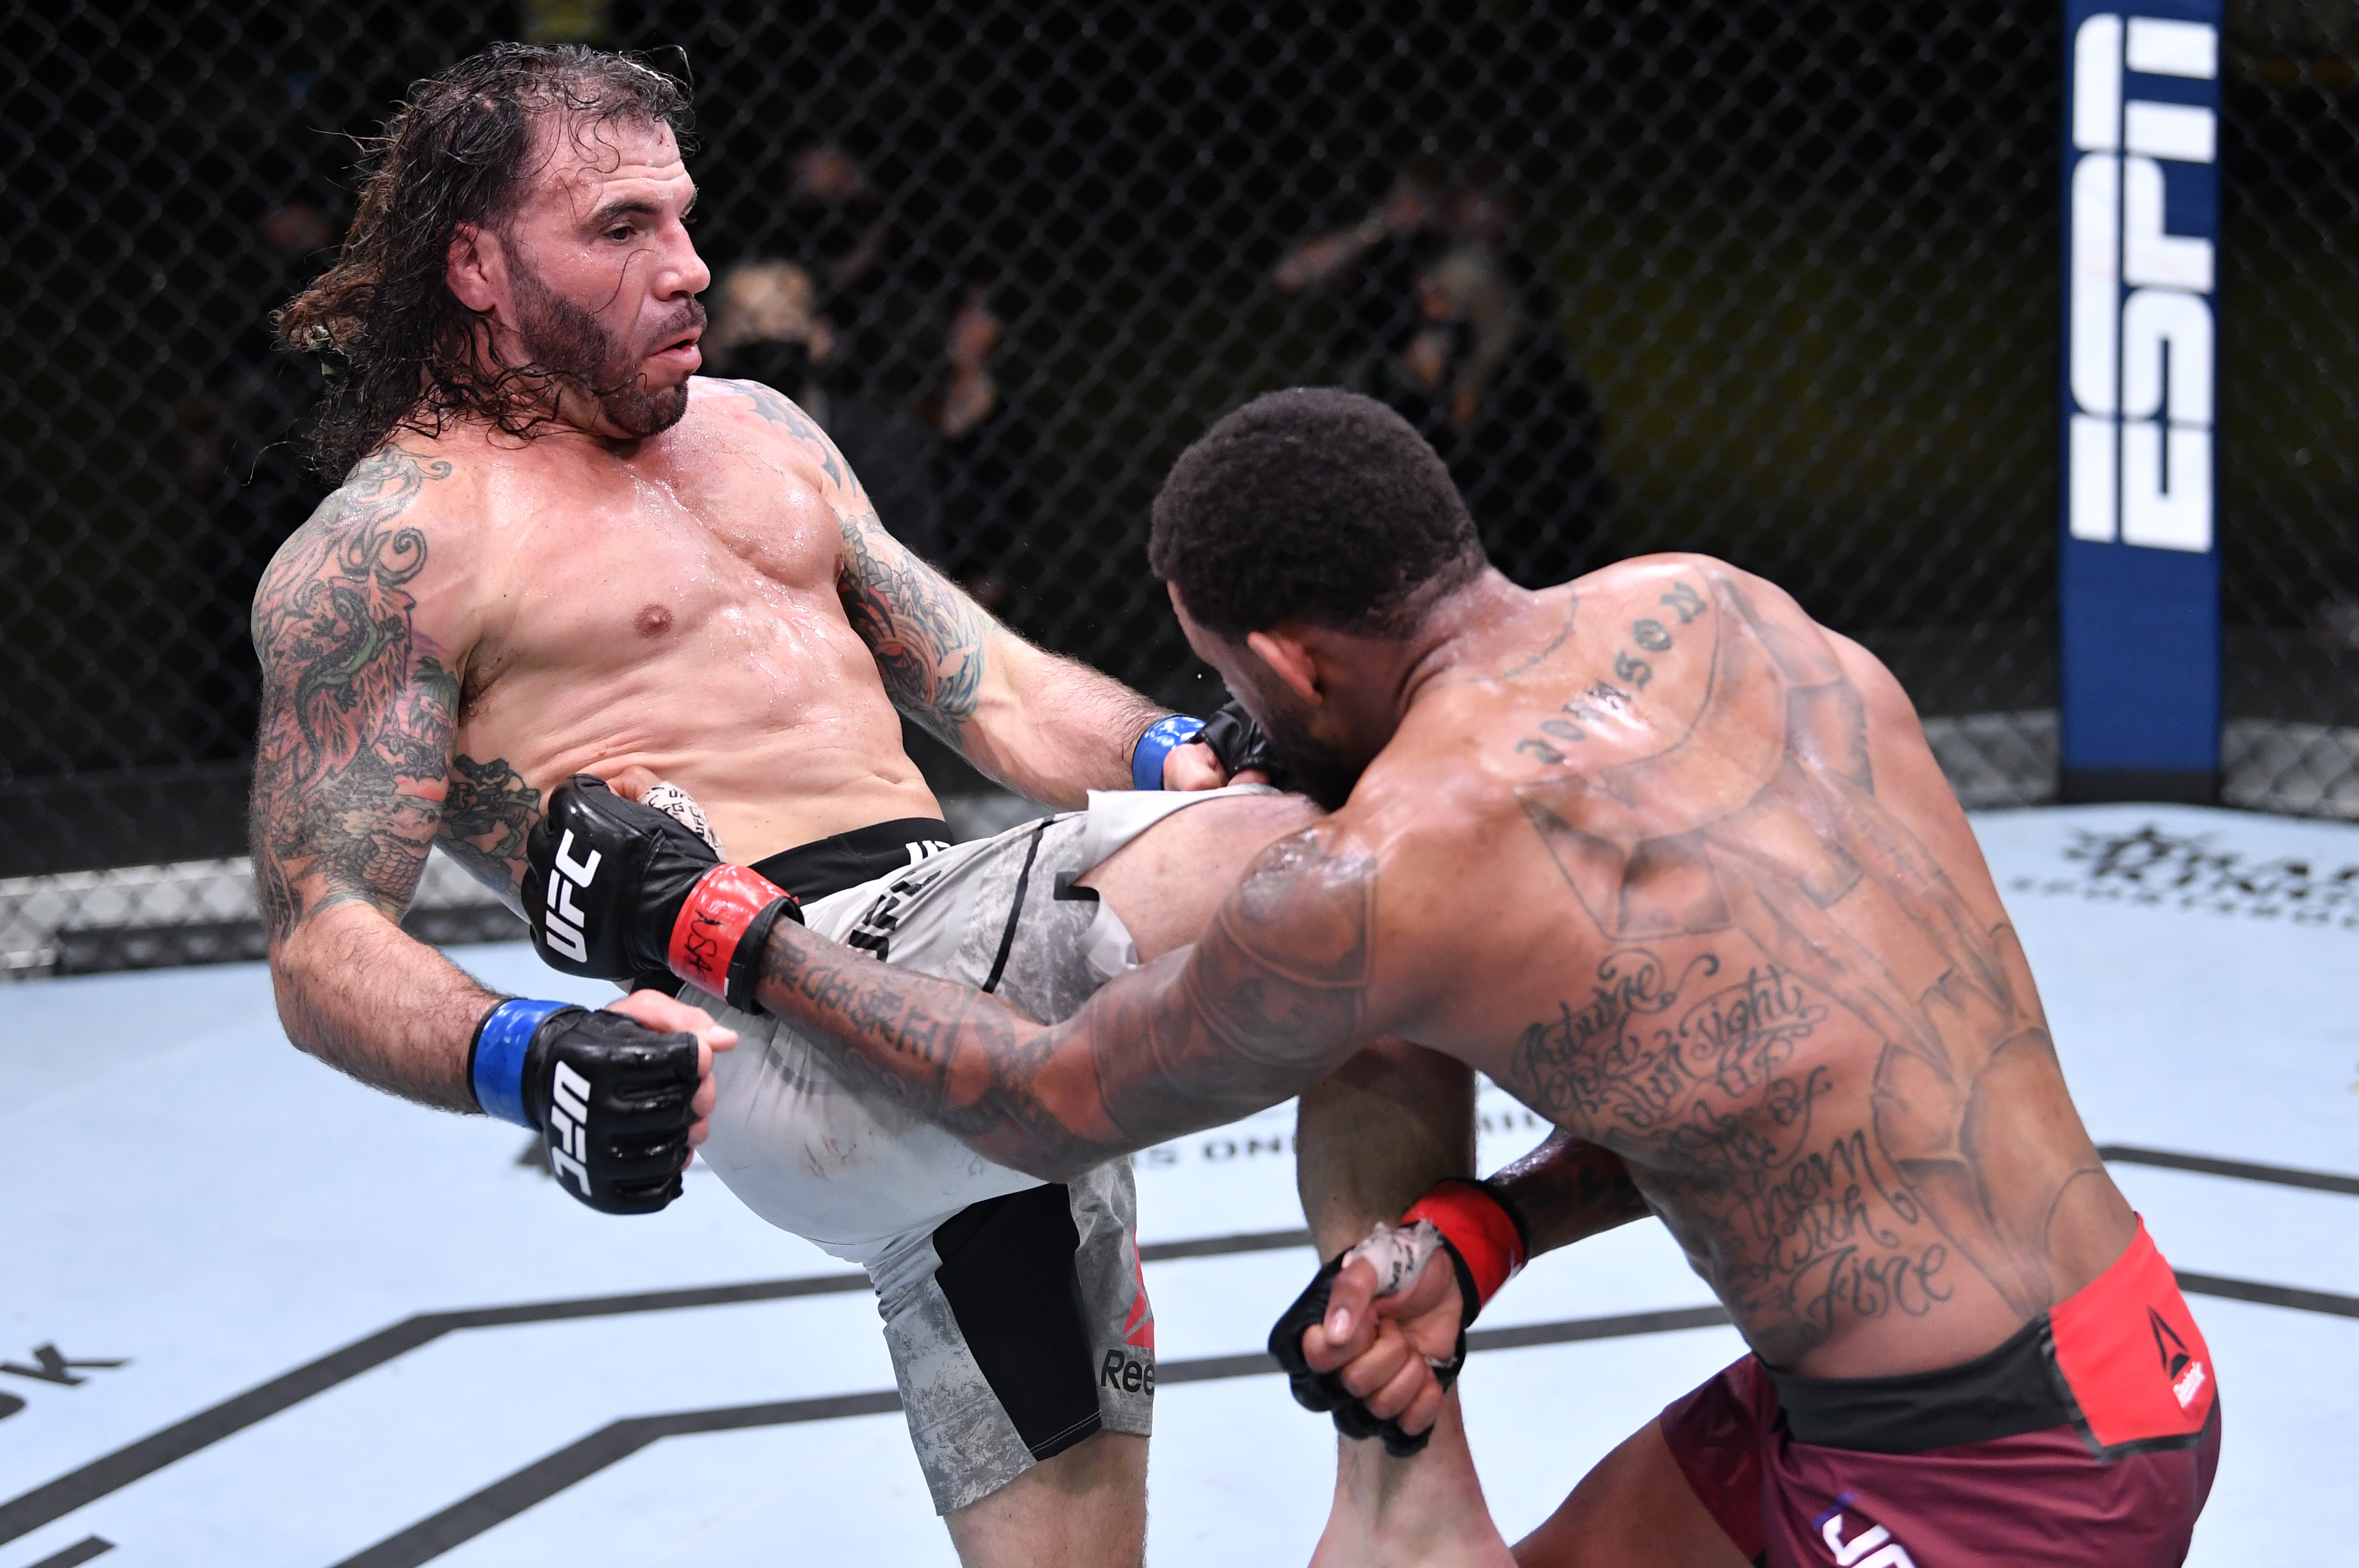 LAS VEGAS, NEVADA - FEBRUARY 06: In this handout image provided by UFC, (L-R) Clay Guida knees Michael Johnson in their lightweight fight during the UFC Fight Night event at UFC APEX on February 06, 2021 in Las Vegas, Nevada. (Photo by Chris Unger/Zuffa LLC via Getty Images)